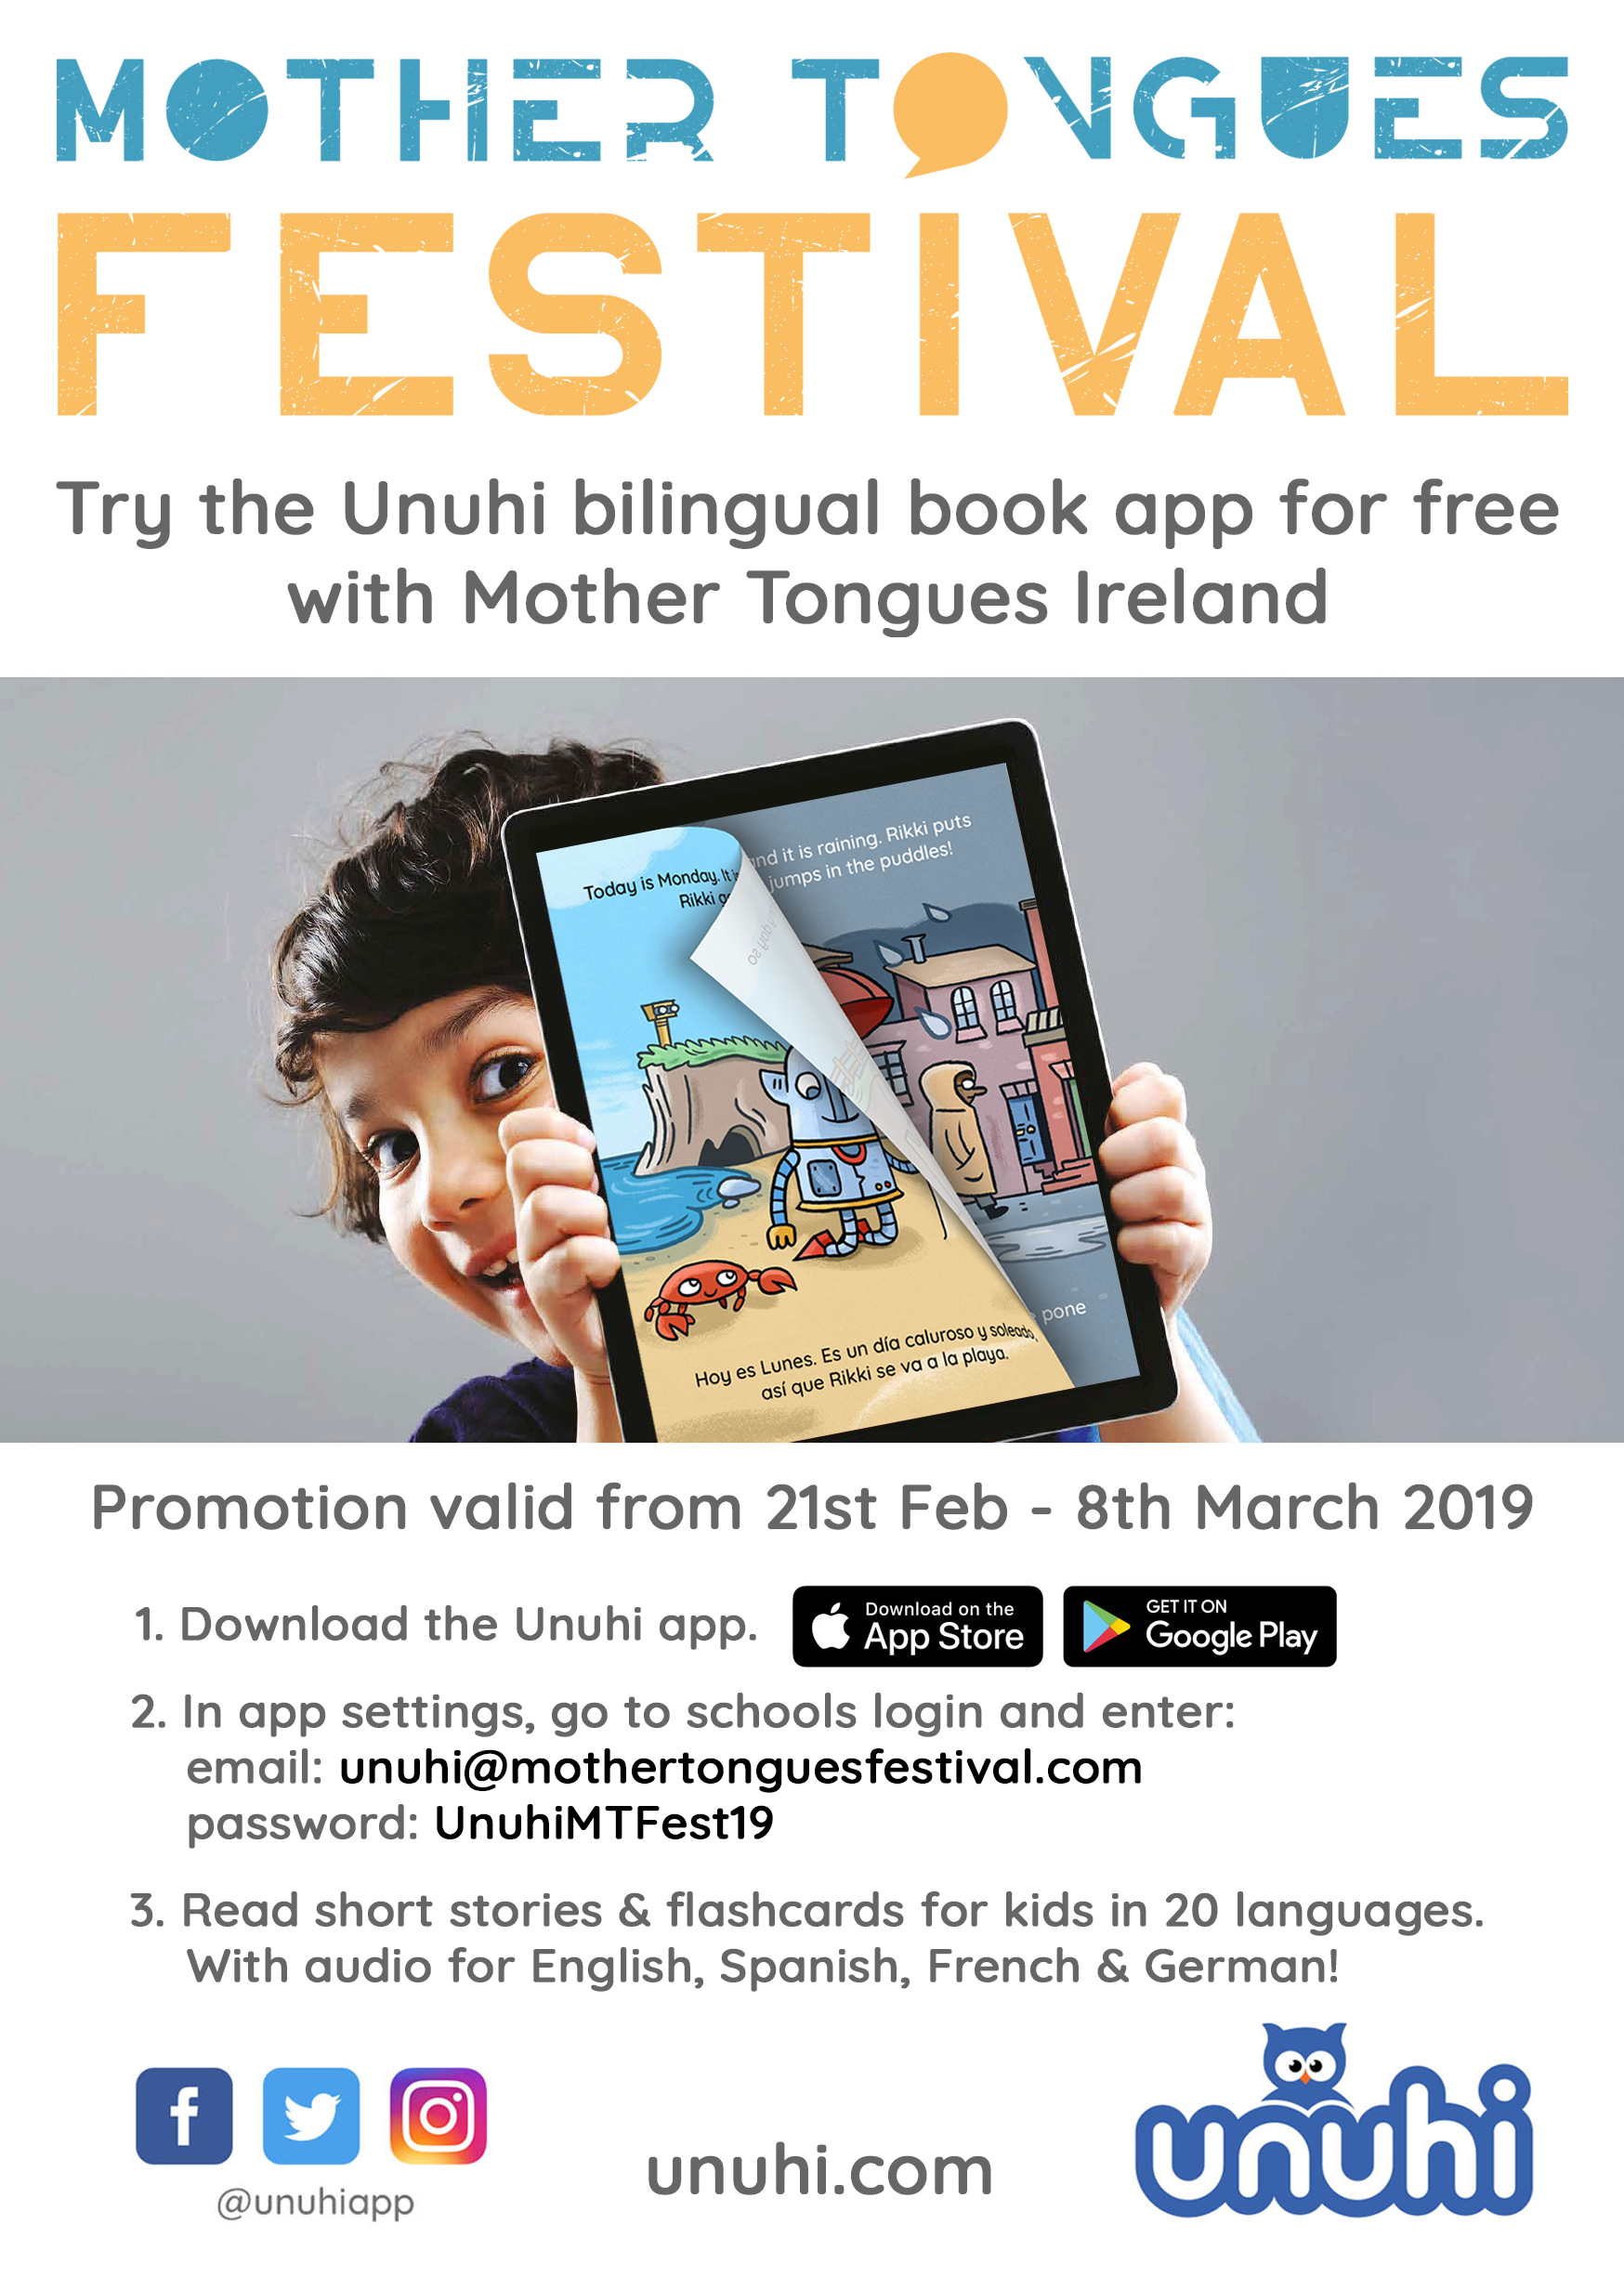 Try the Unuhi bilingual book app FOR FREE! - Mother Tongues